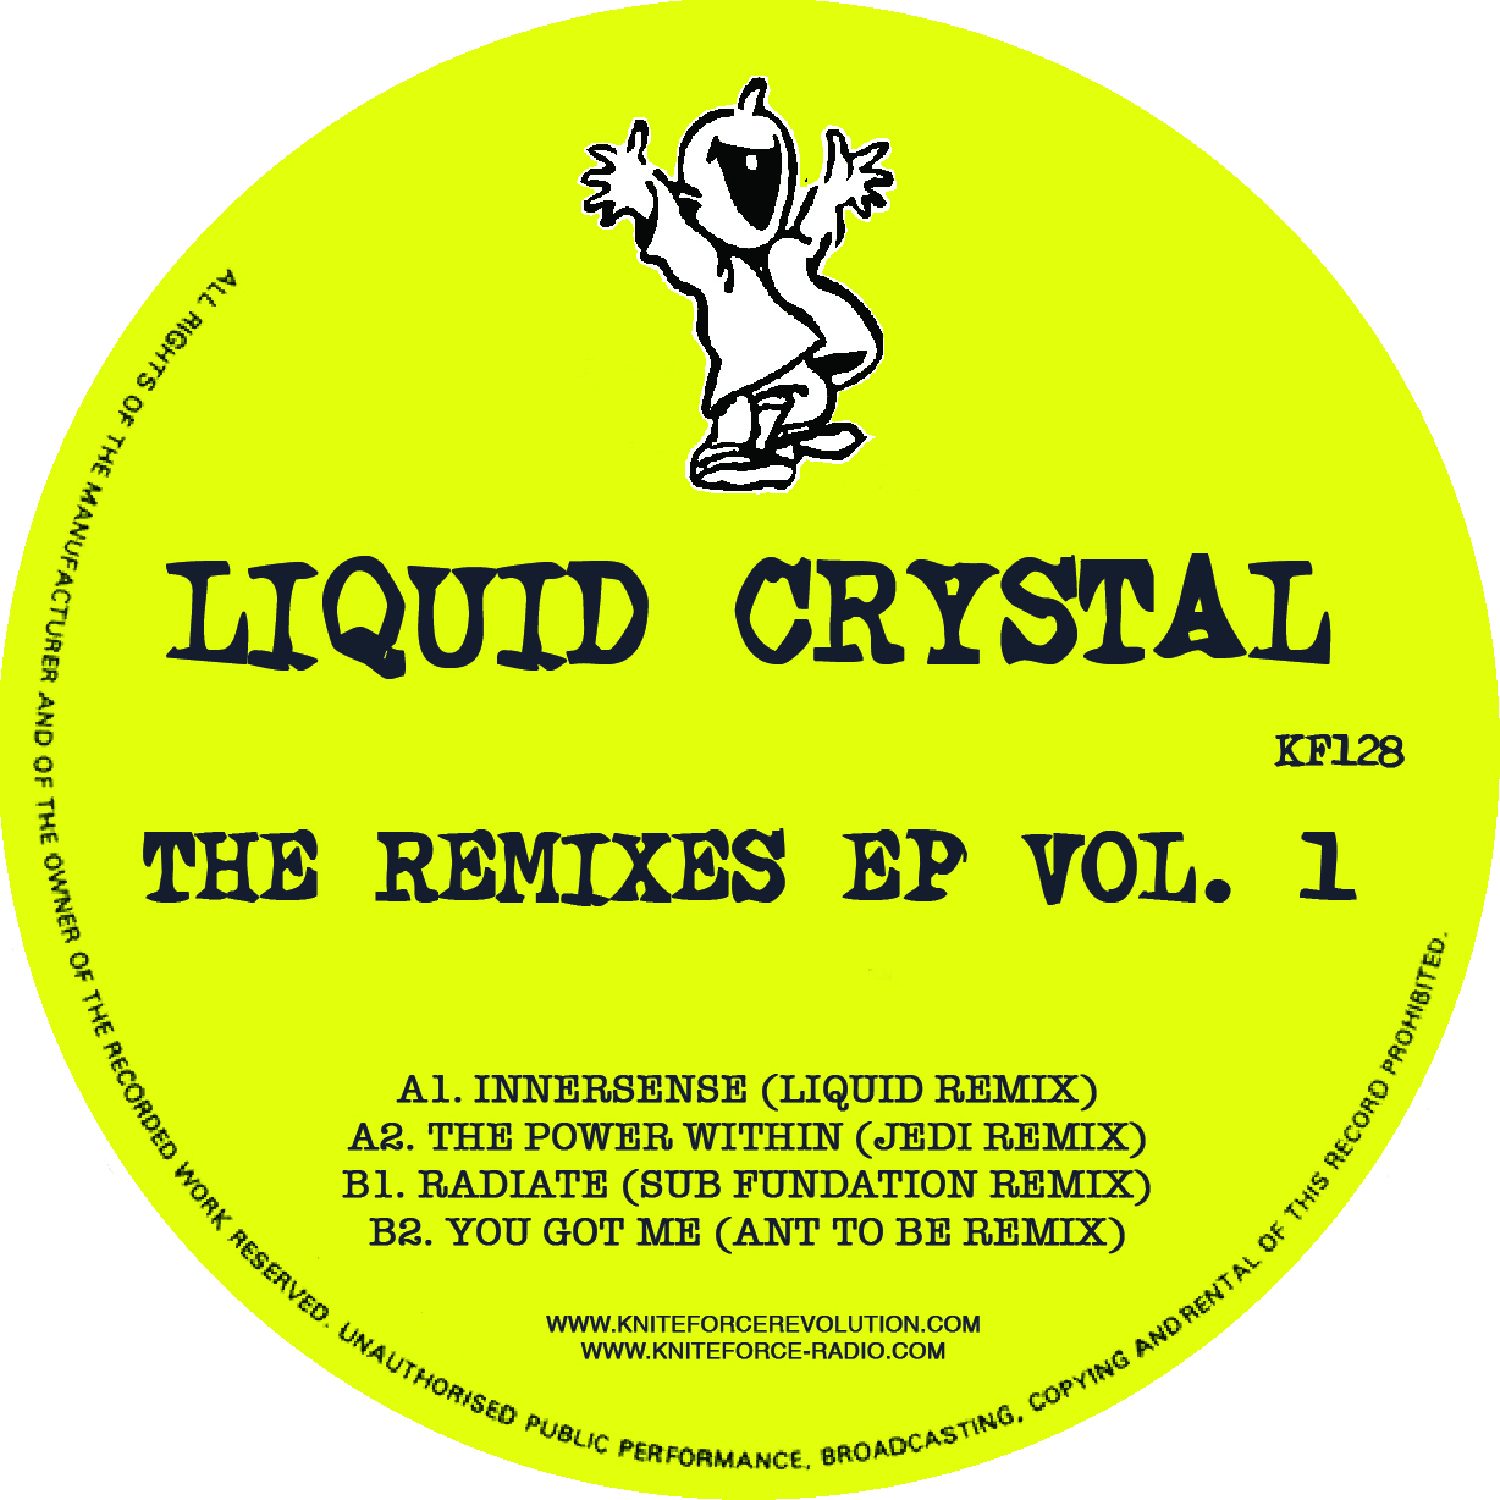 "[KF128] Liquid Crystal - The Liquid Crystal Remixes EP Vol. 1 (12"" Vinyl + Digital)"